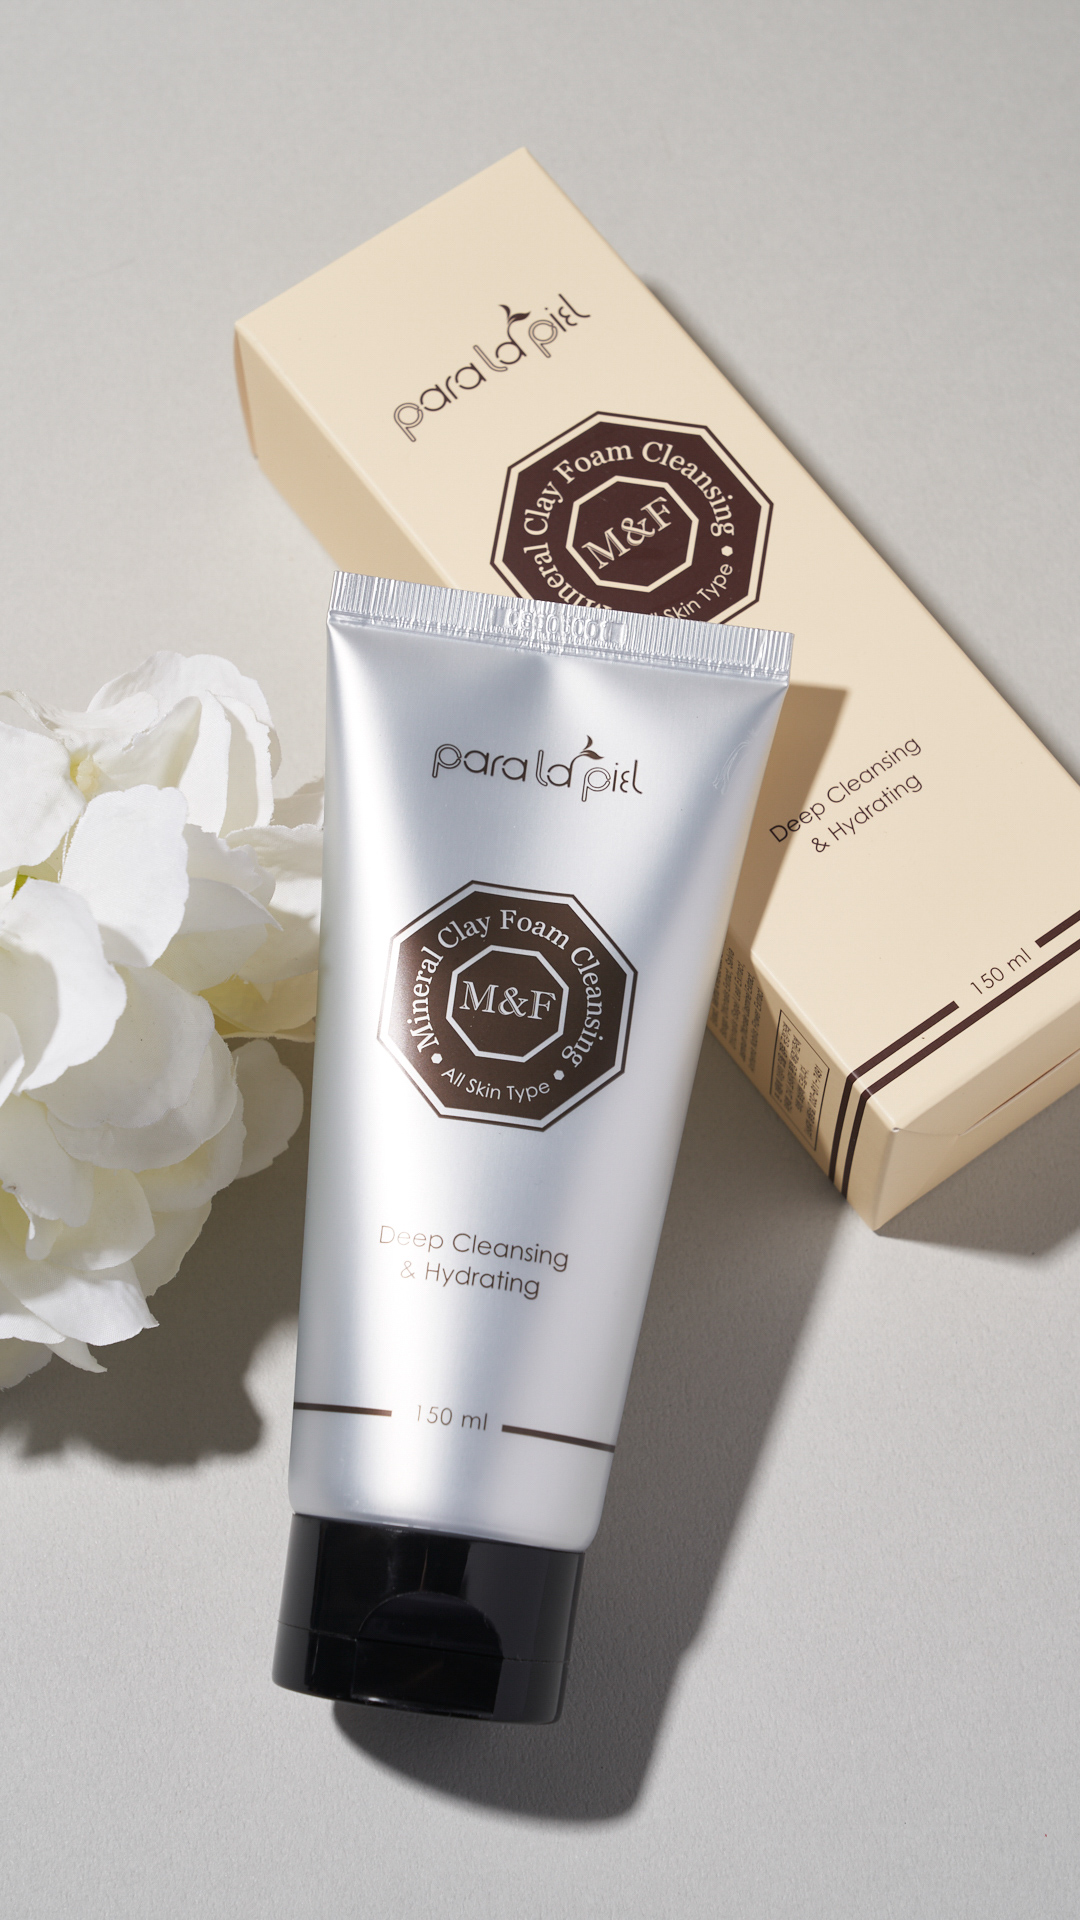 Paralapiel M&F Mineral clay foam cleansing